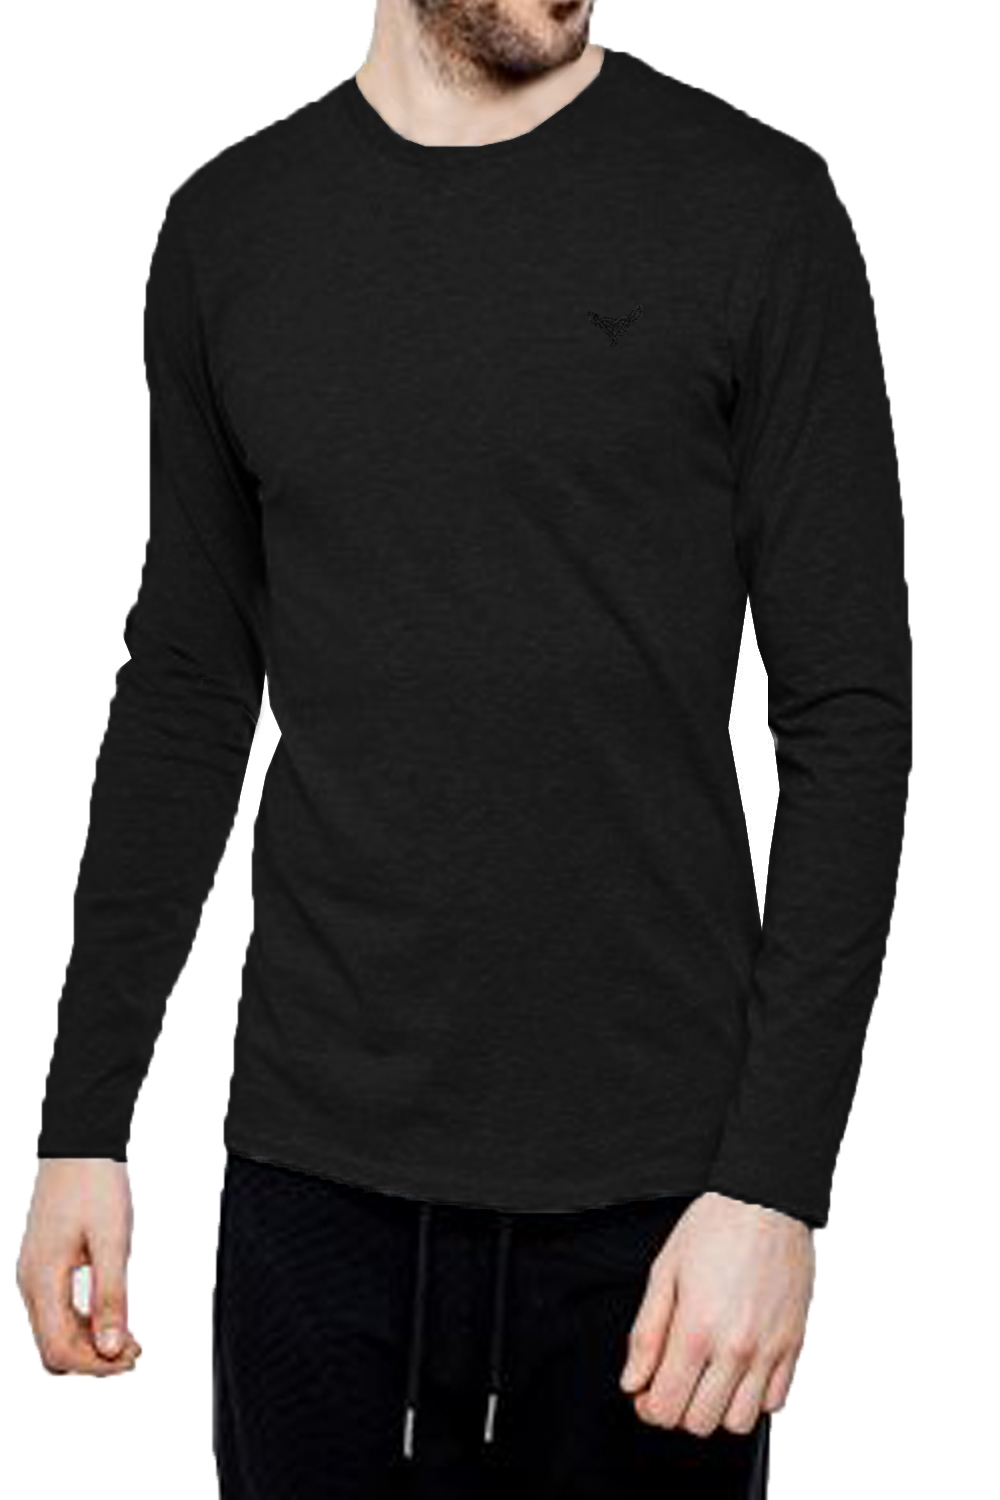 Threadbare-Mens-William-Long-Sleeve-T-Shirt-Cotton-Stretch-Round-Neck-Winter-Top thumbnail 3